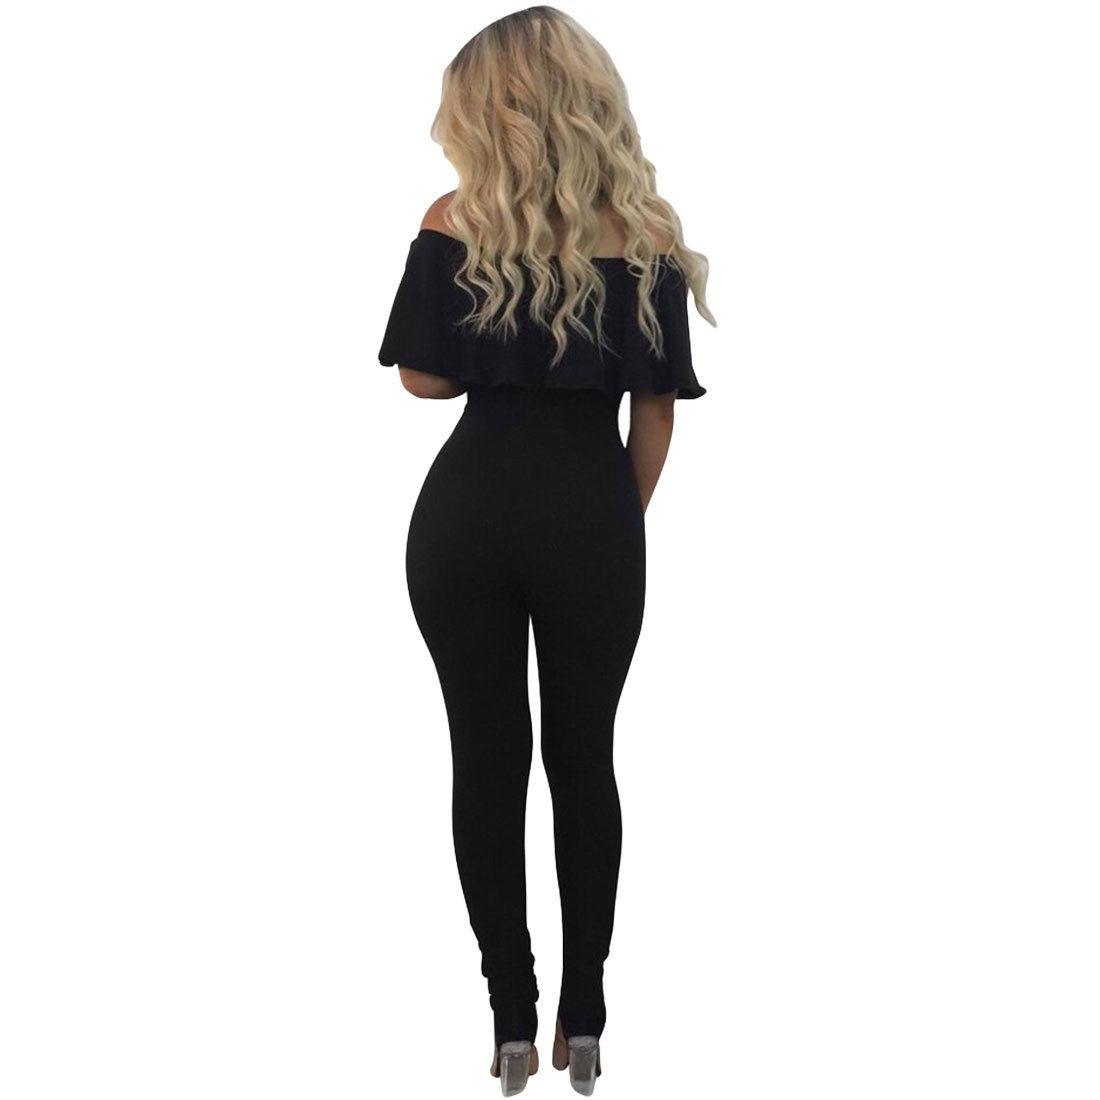 fab7c363705 BU-Bauty Women s Off Shoulder Ruffle Bodycon Jumpsuit Cut Out Hole Legging  Rompers Outfit  Amazon.co.uk  Clothing